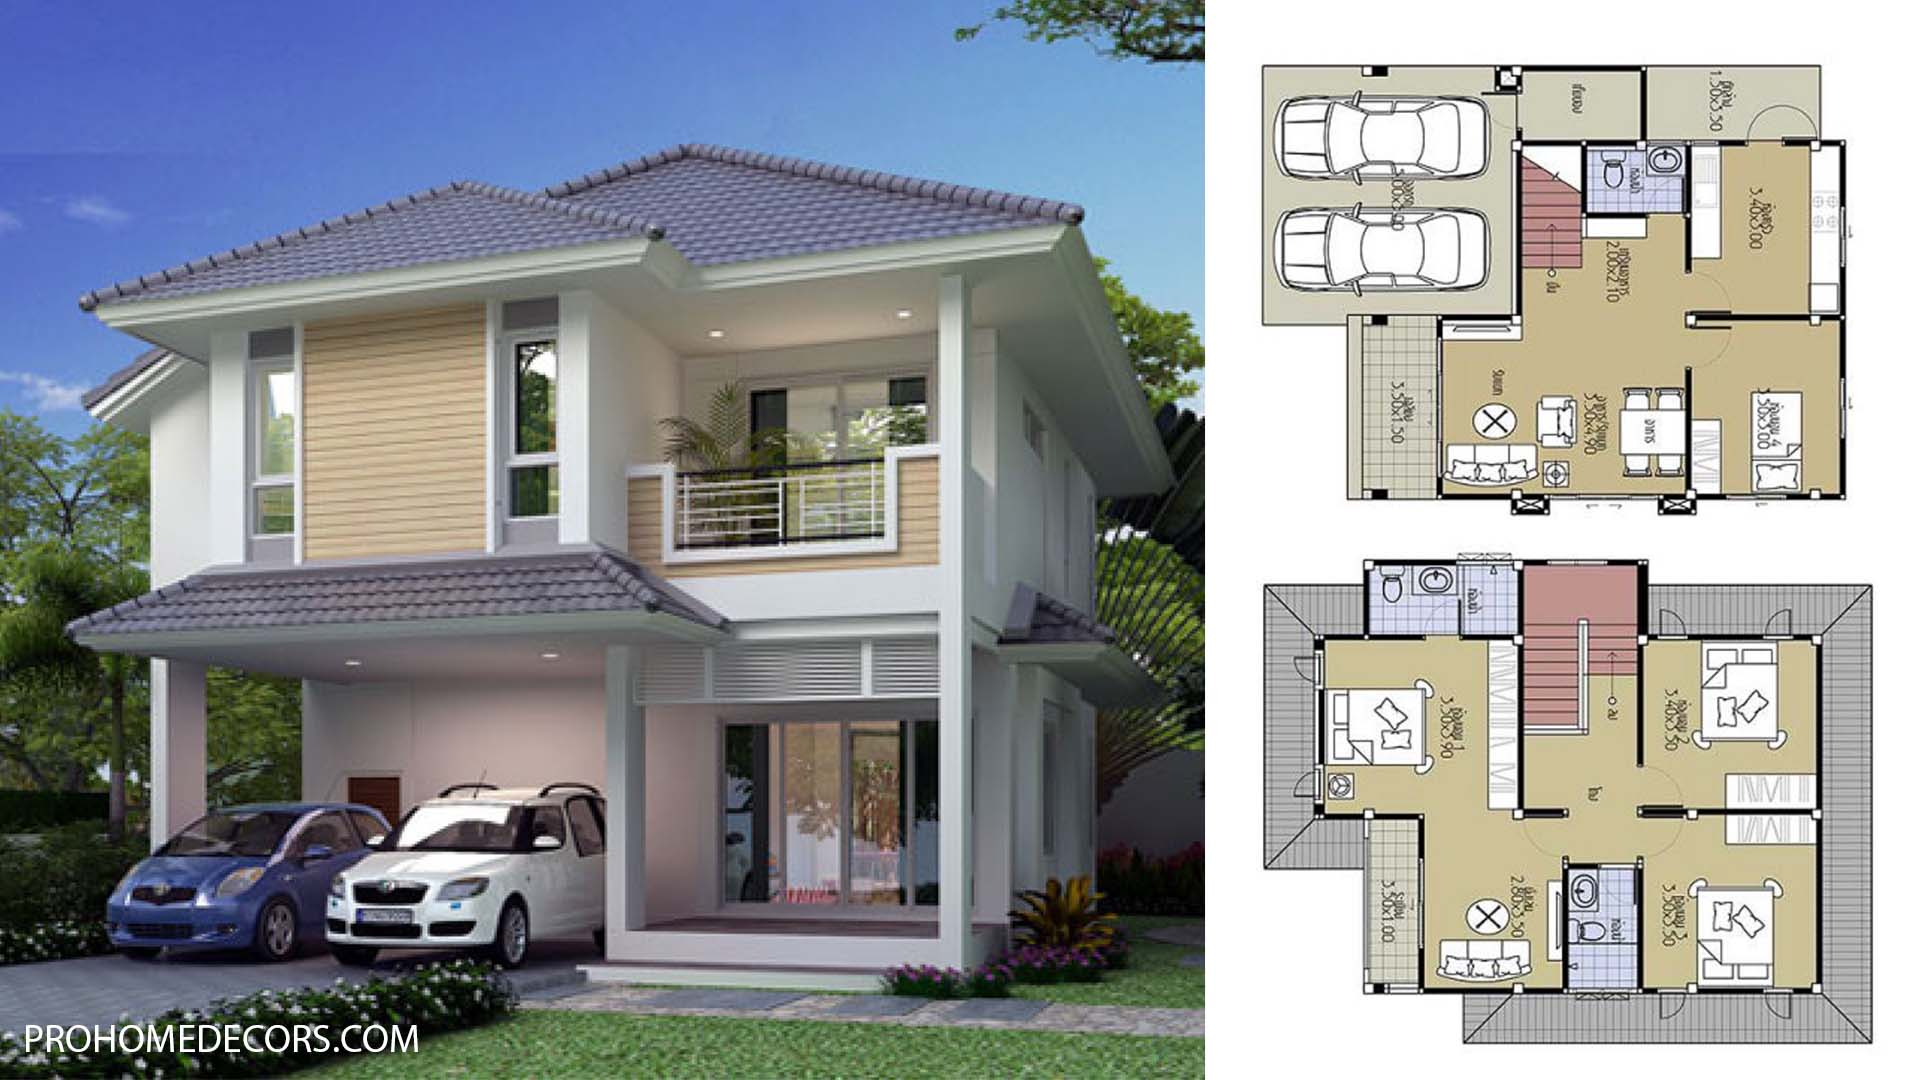 House Plans 8.5×9.5 with 4 Bedrooms